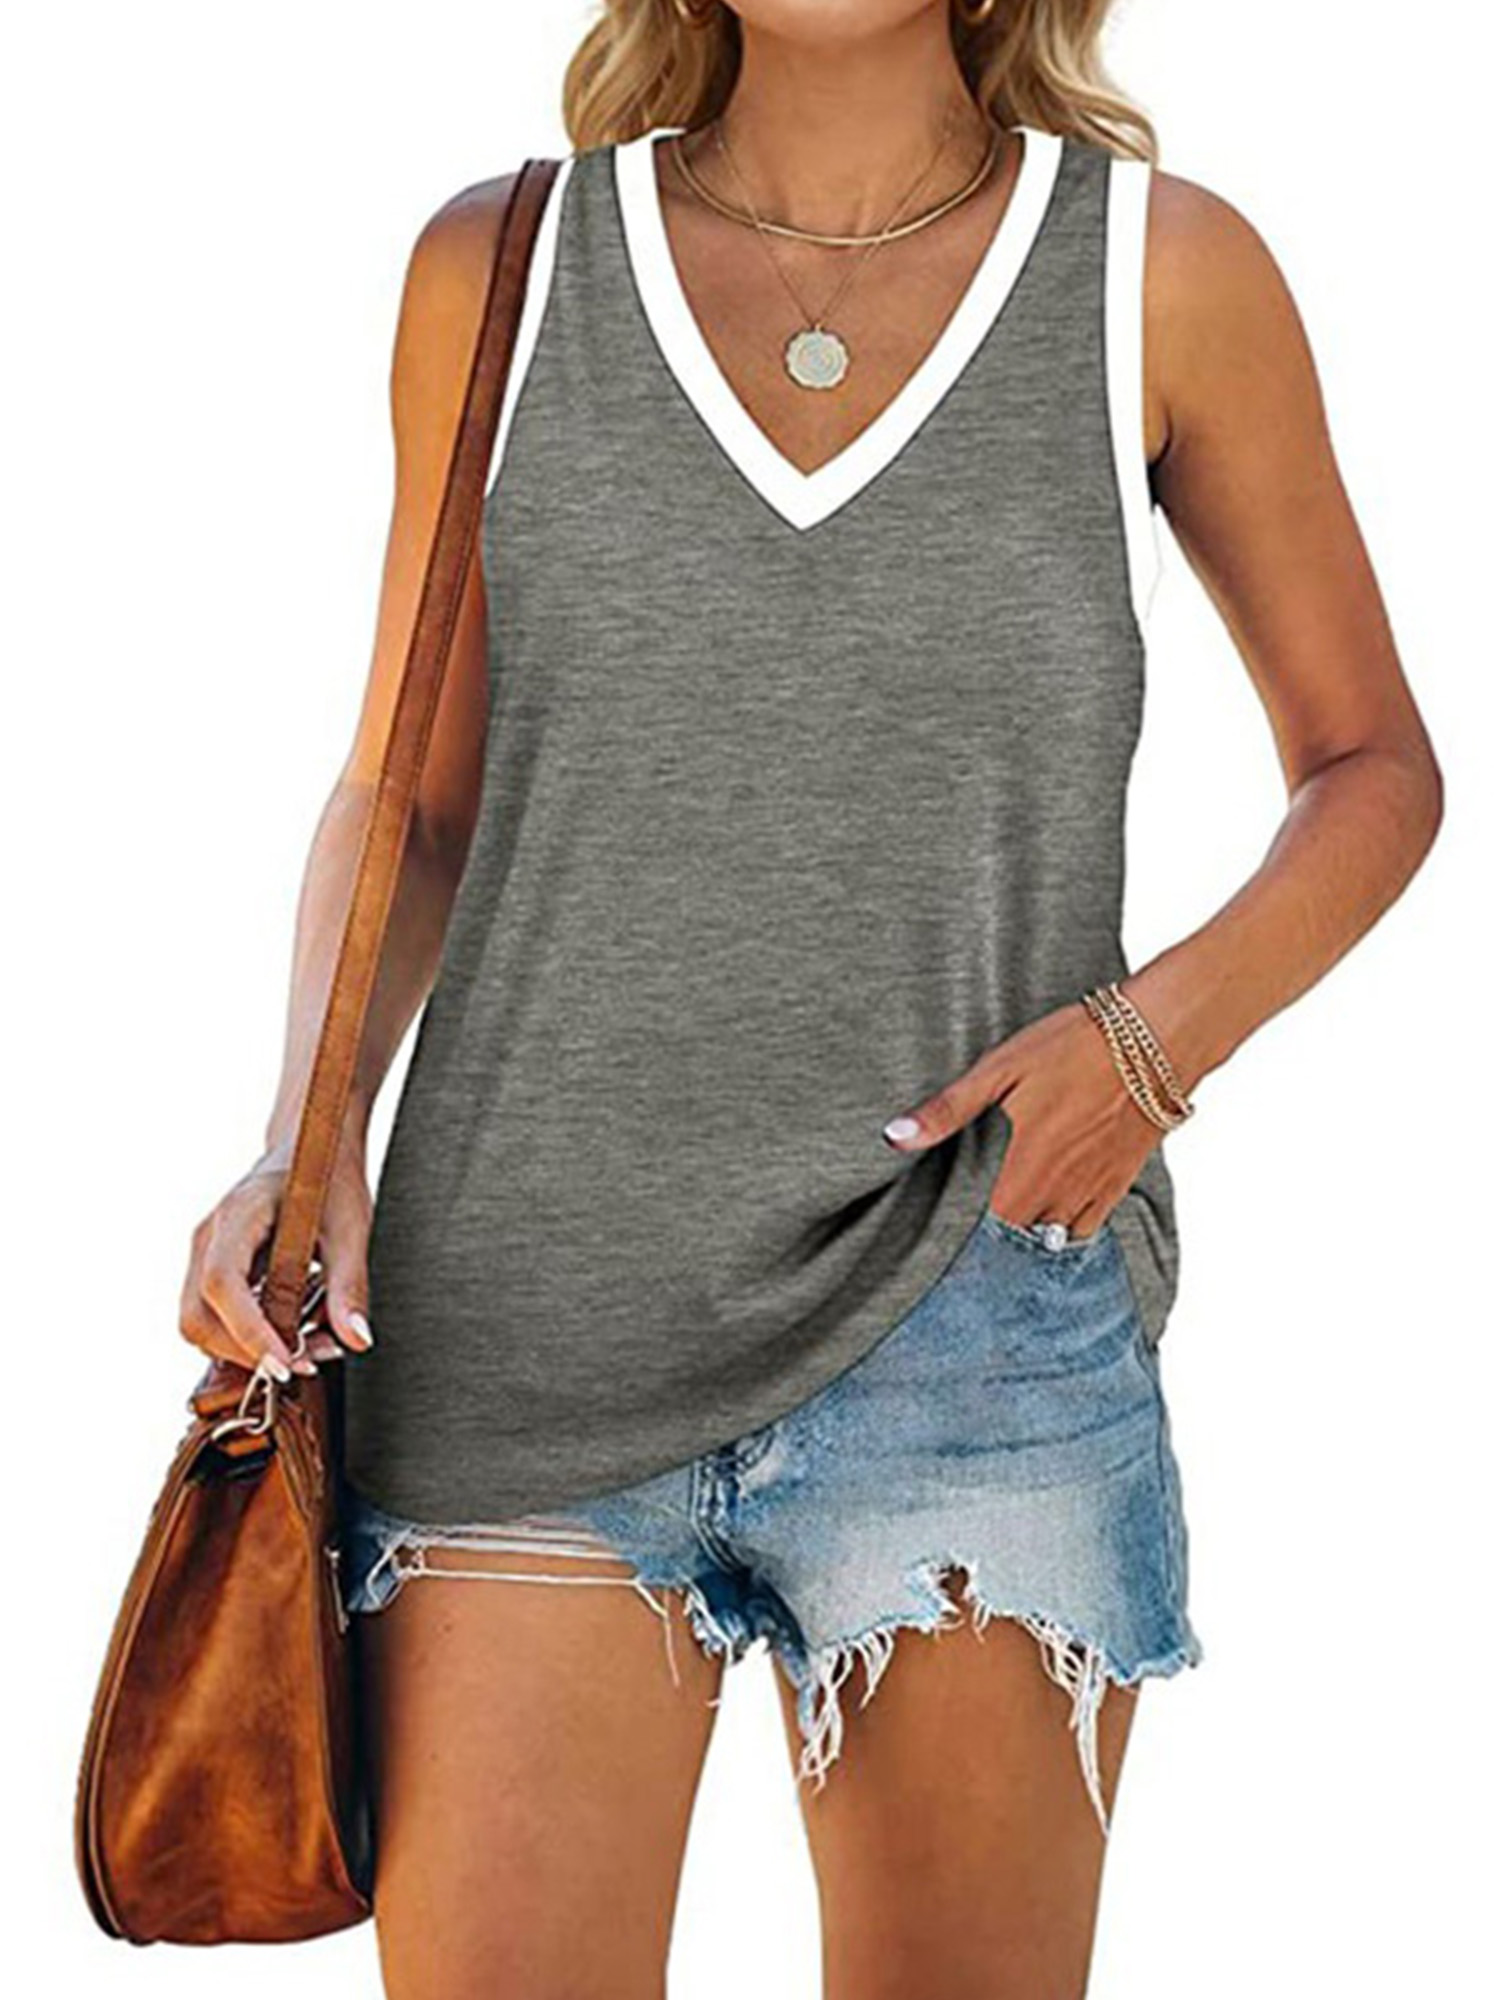 Womens Summer Sleeveless Vest Tank Tops Casual Slim Fit Basic Shirt Solid Blouse